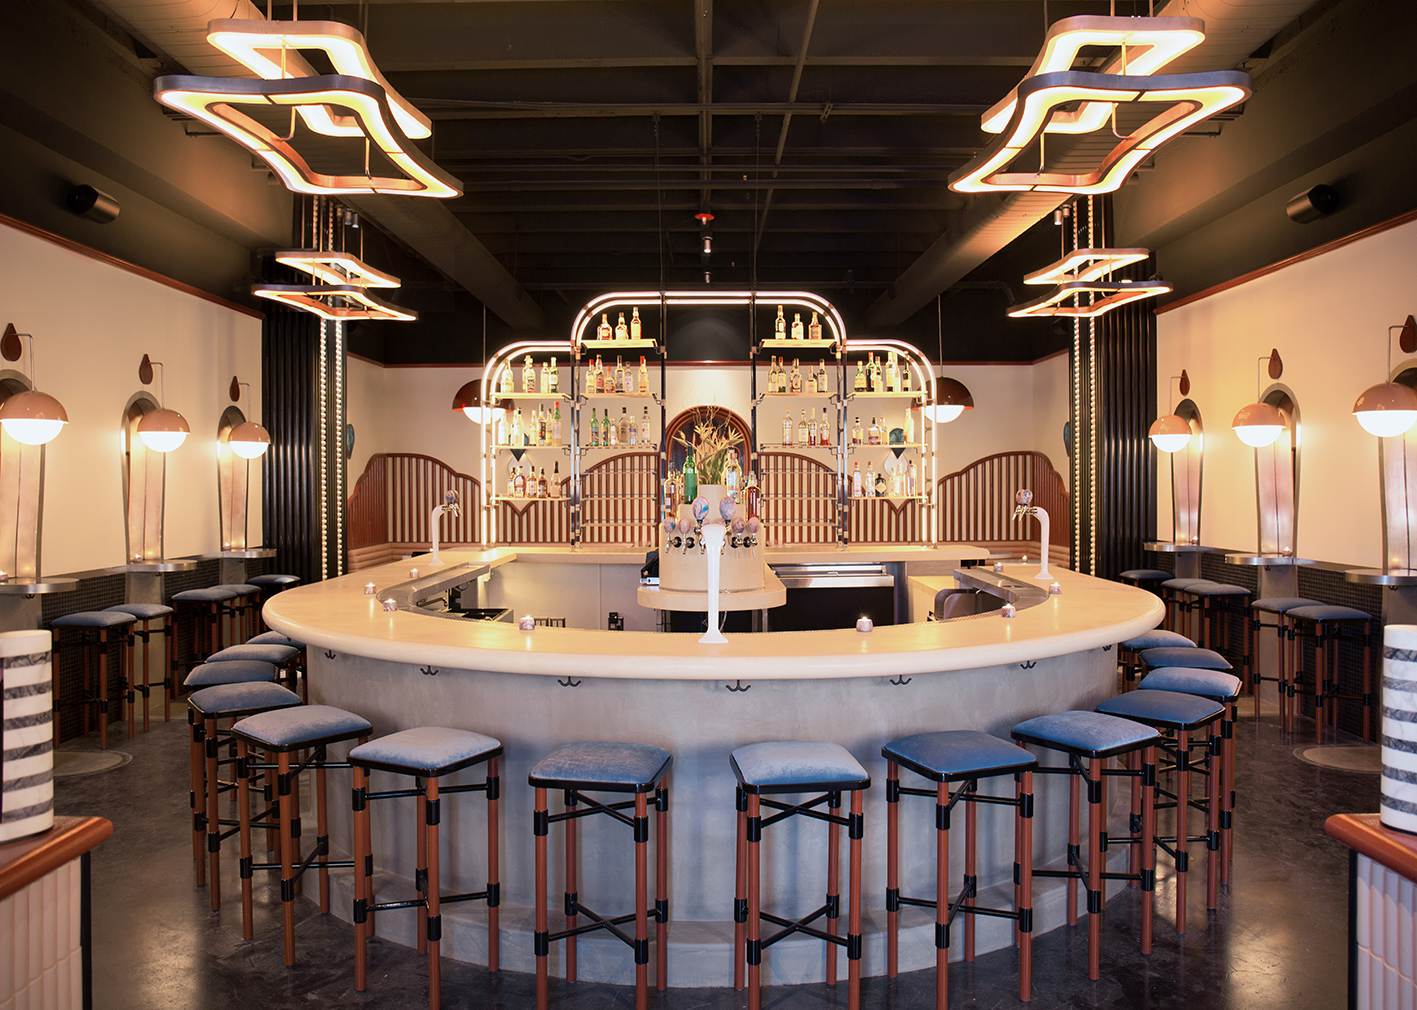 Bibo Ergo Sum in LA designed by Home Studios